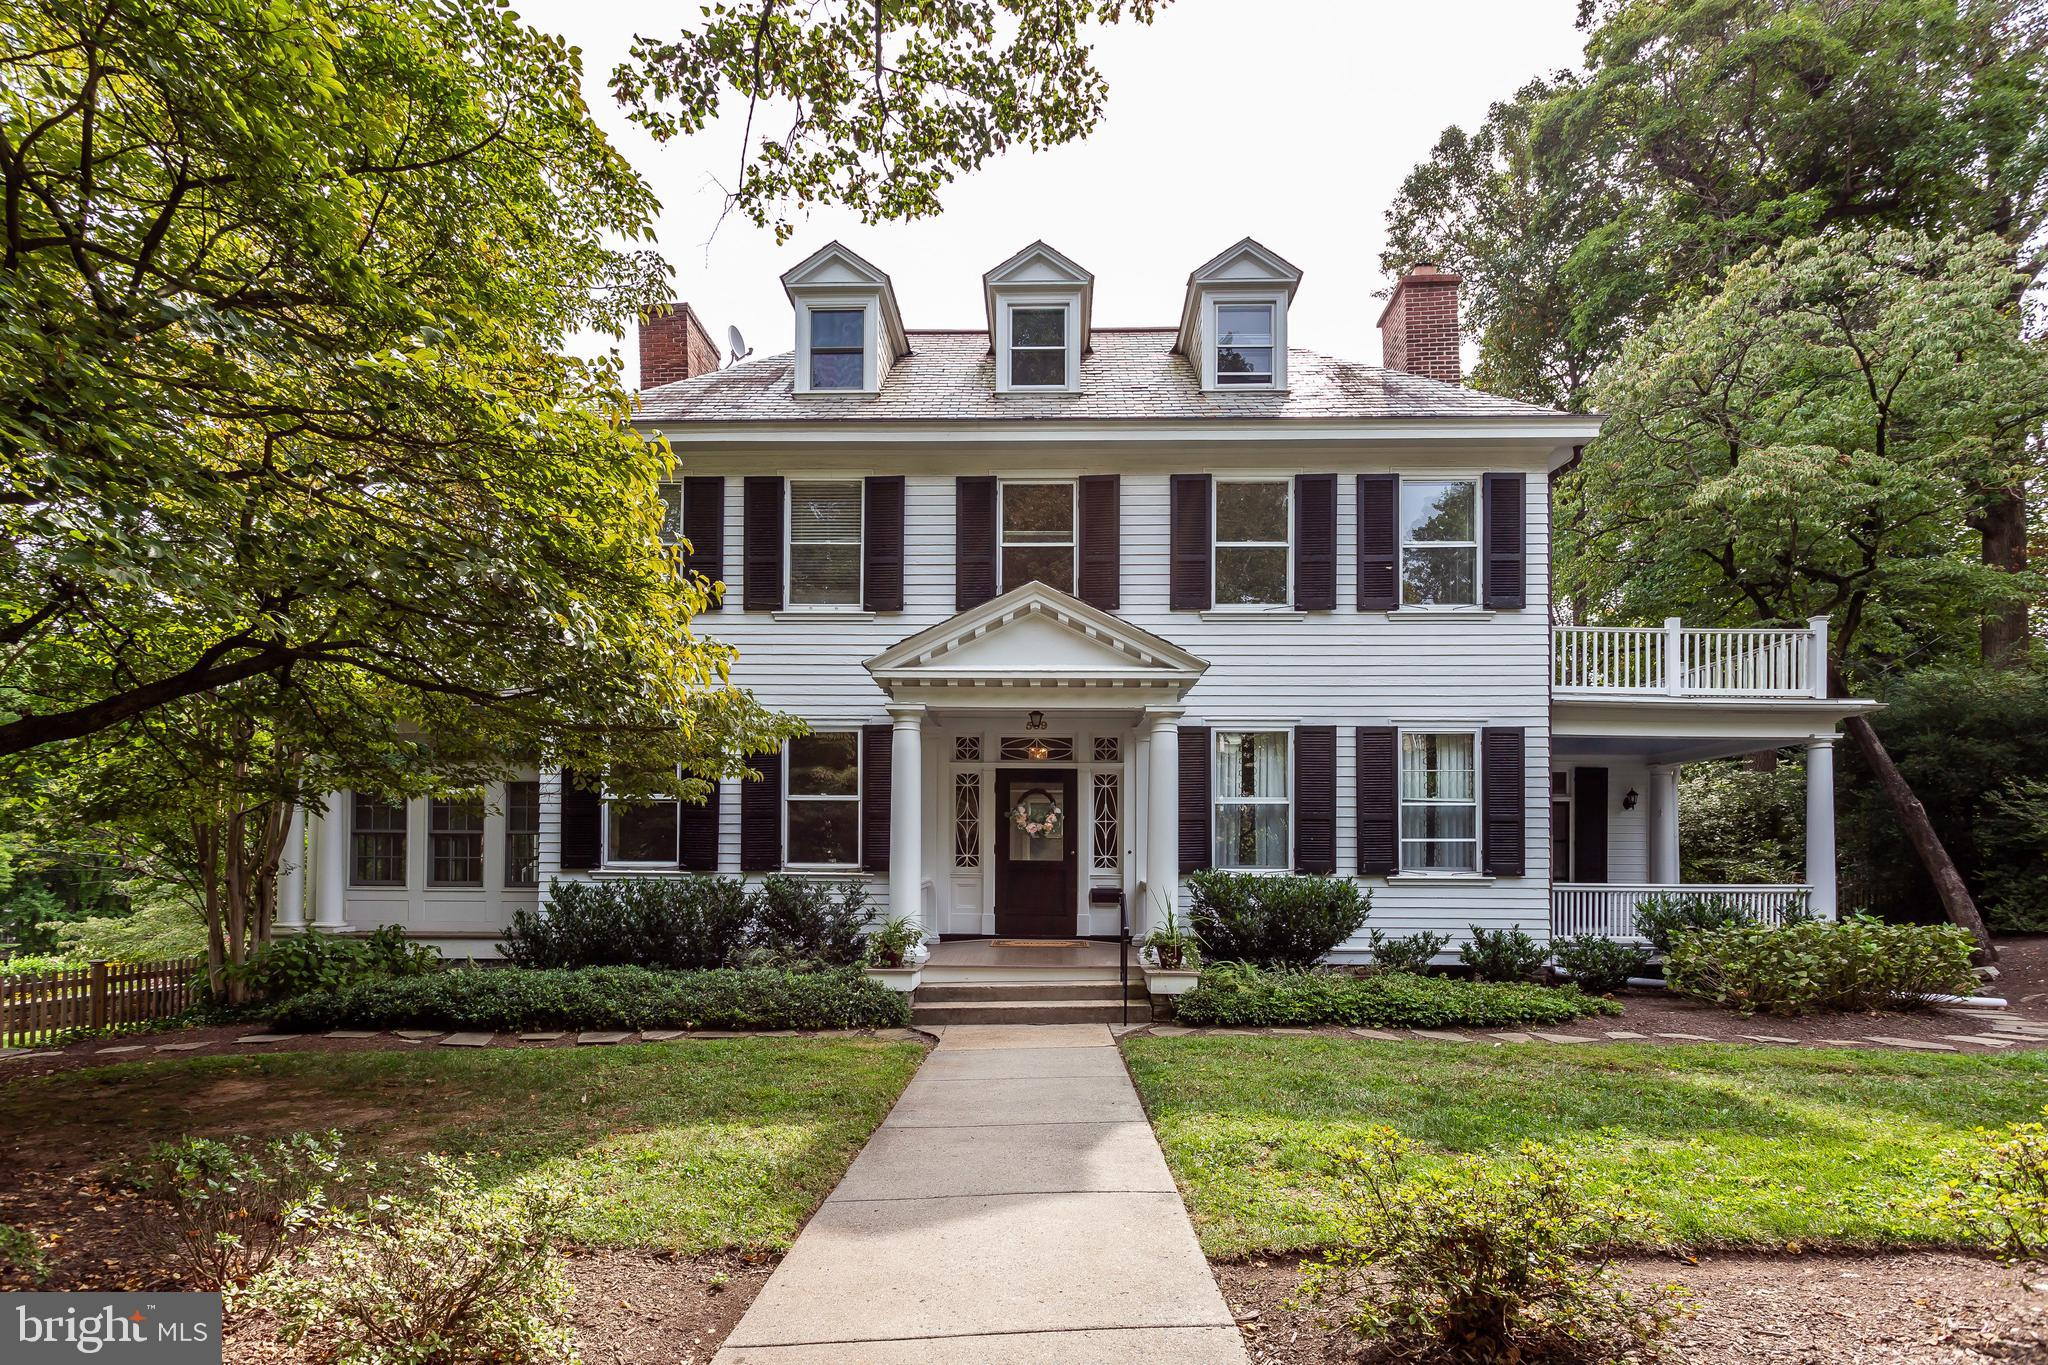 509 WOODLAWN ROAD, BALTIMORE, MD 21210